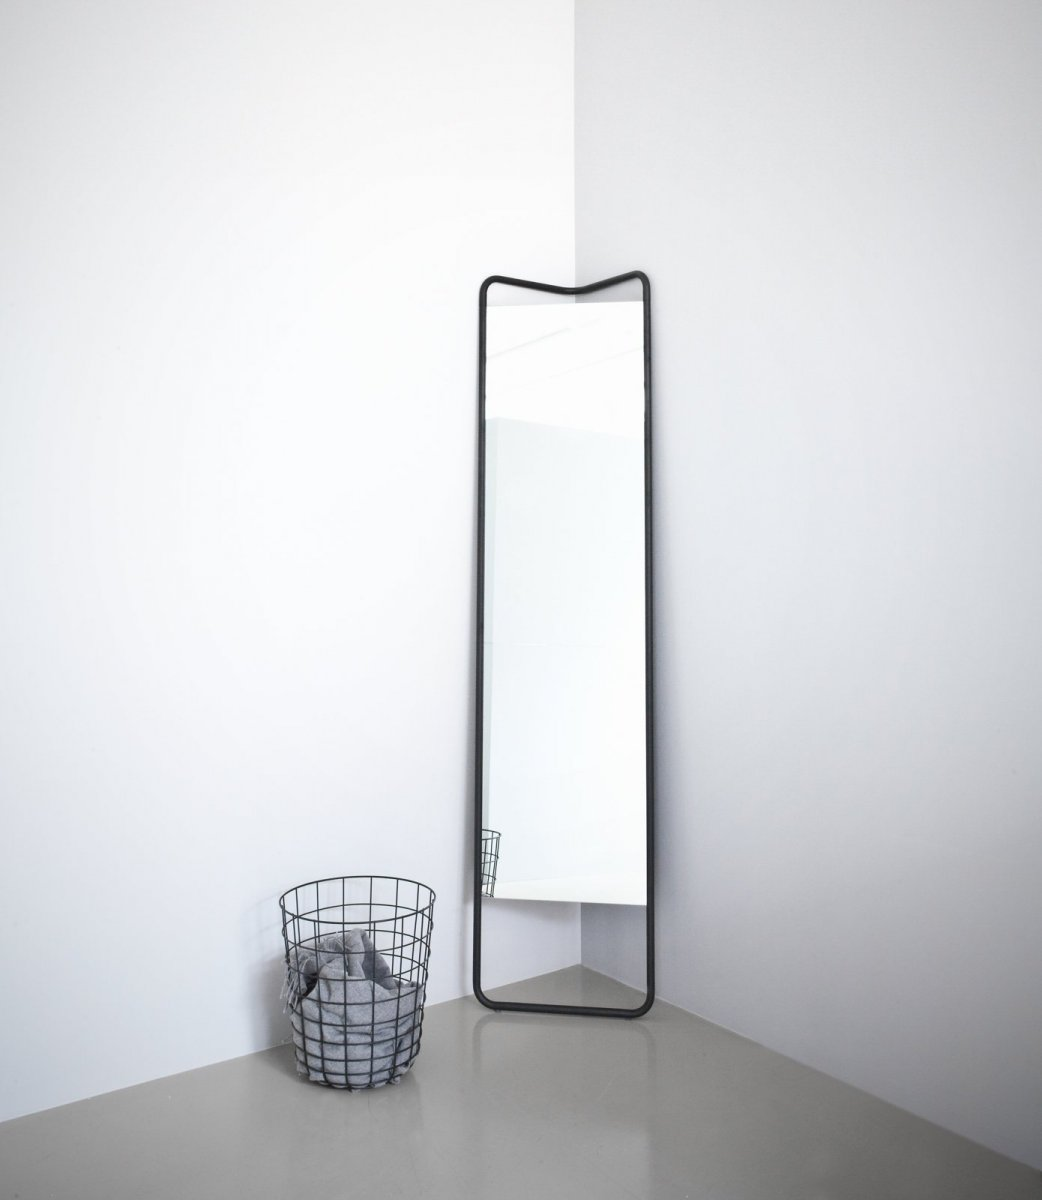 Kaschkasch Floor Mirror and Wire Bin.